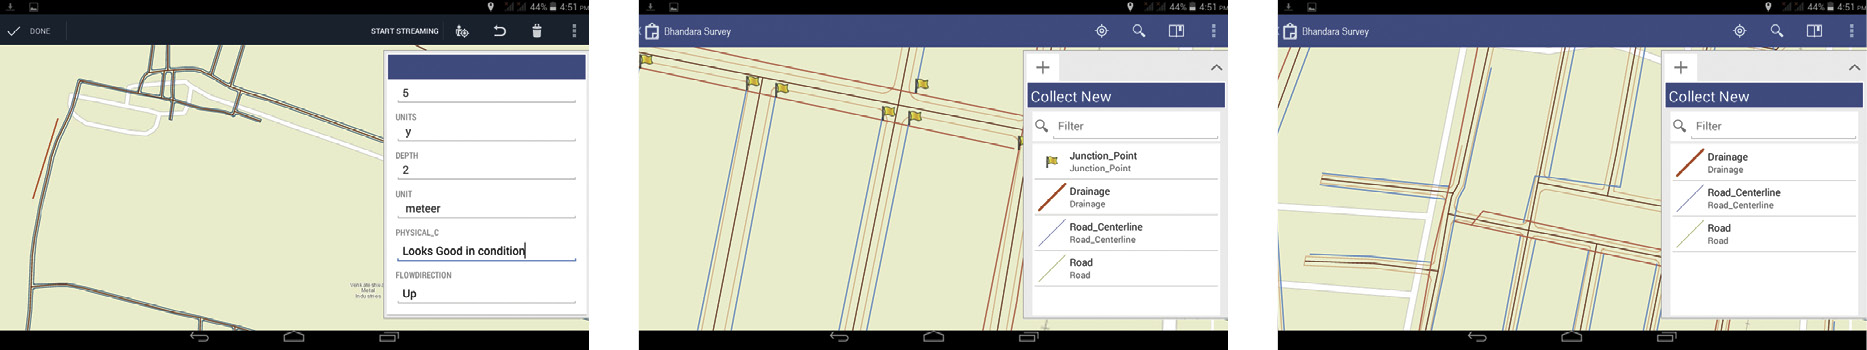 Mobile mapping for wastewater management in an Indian city